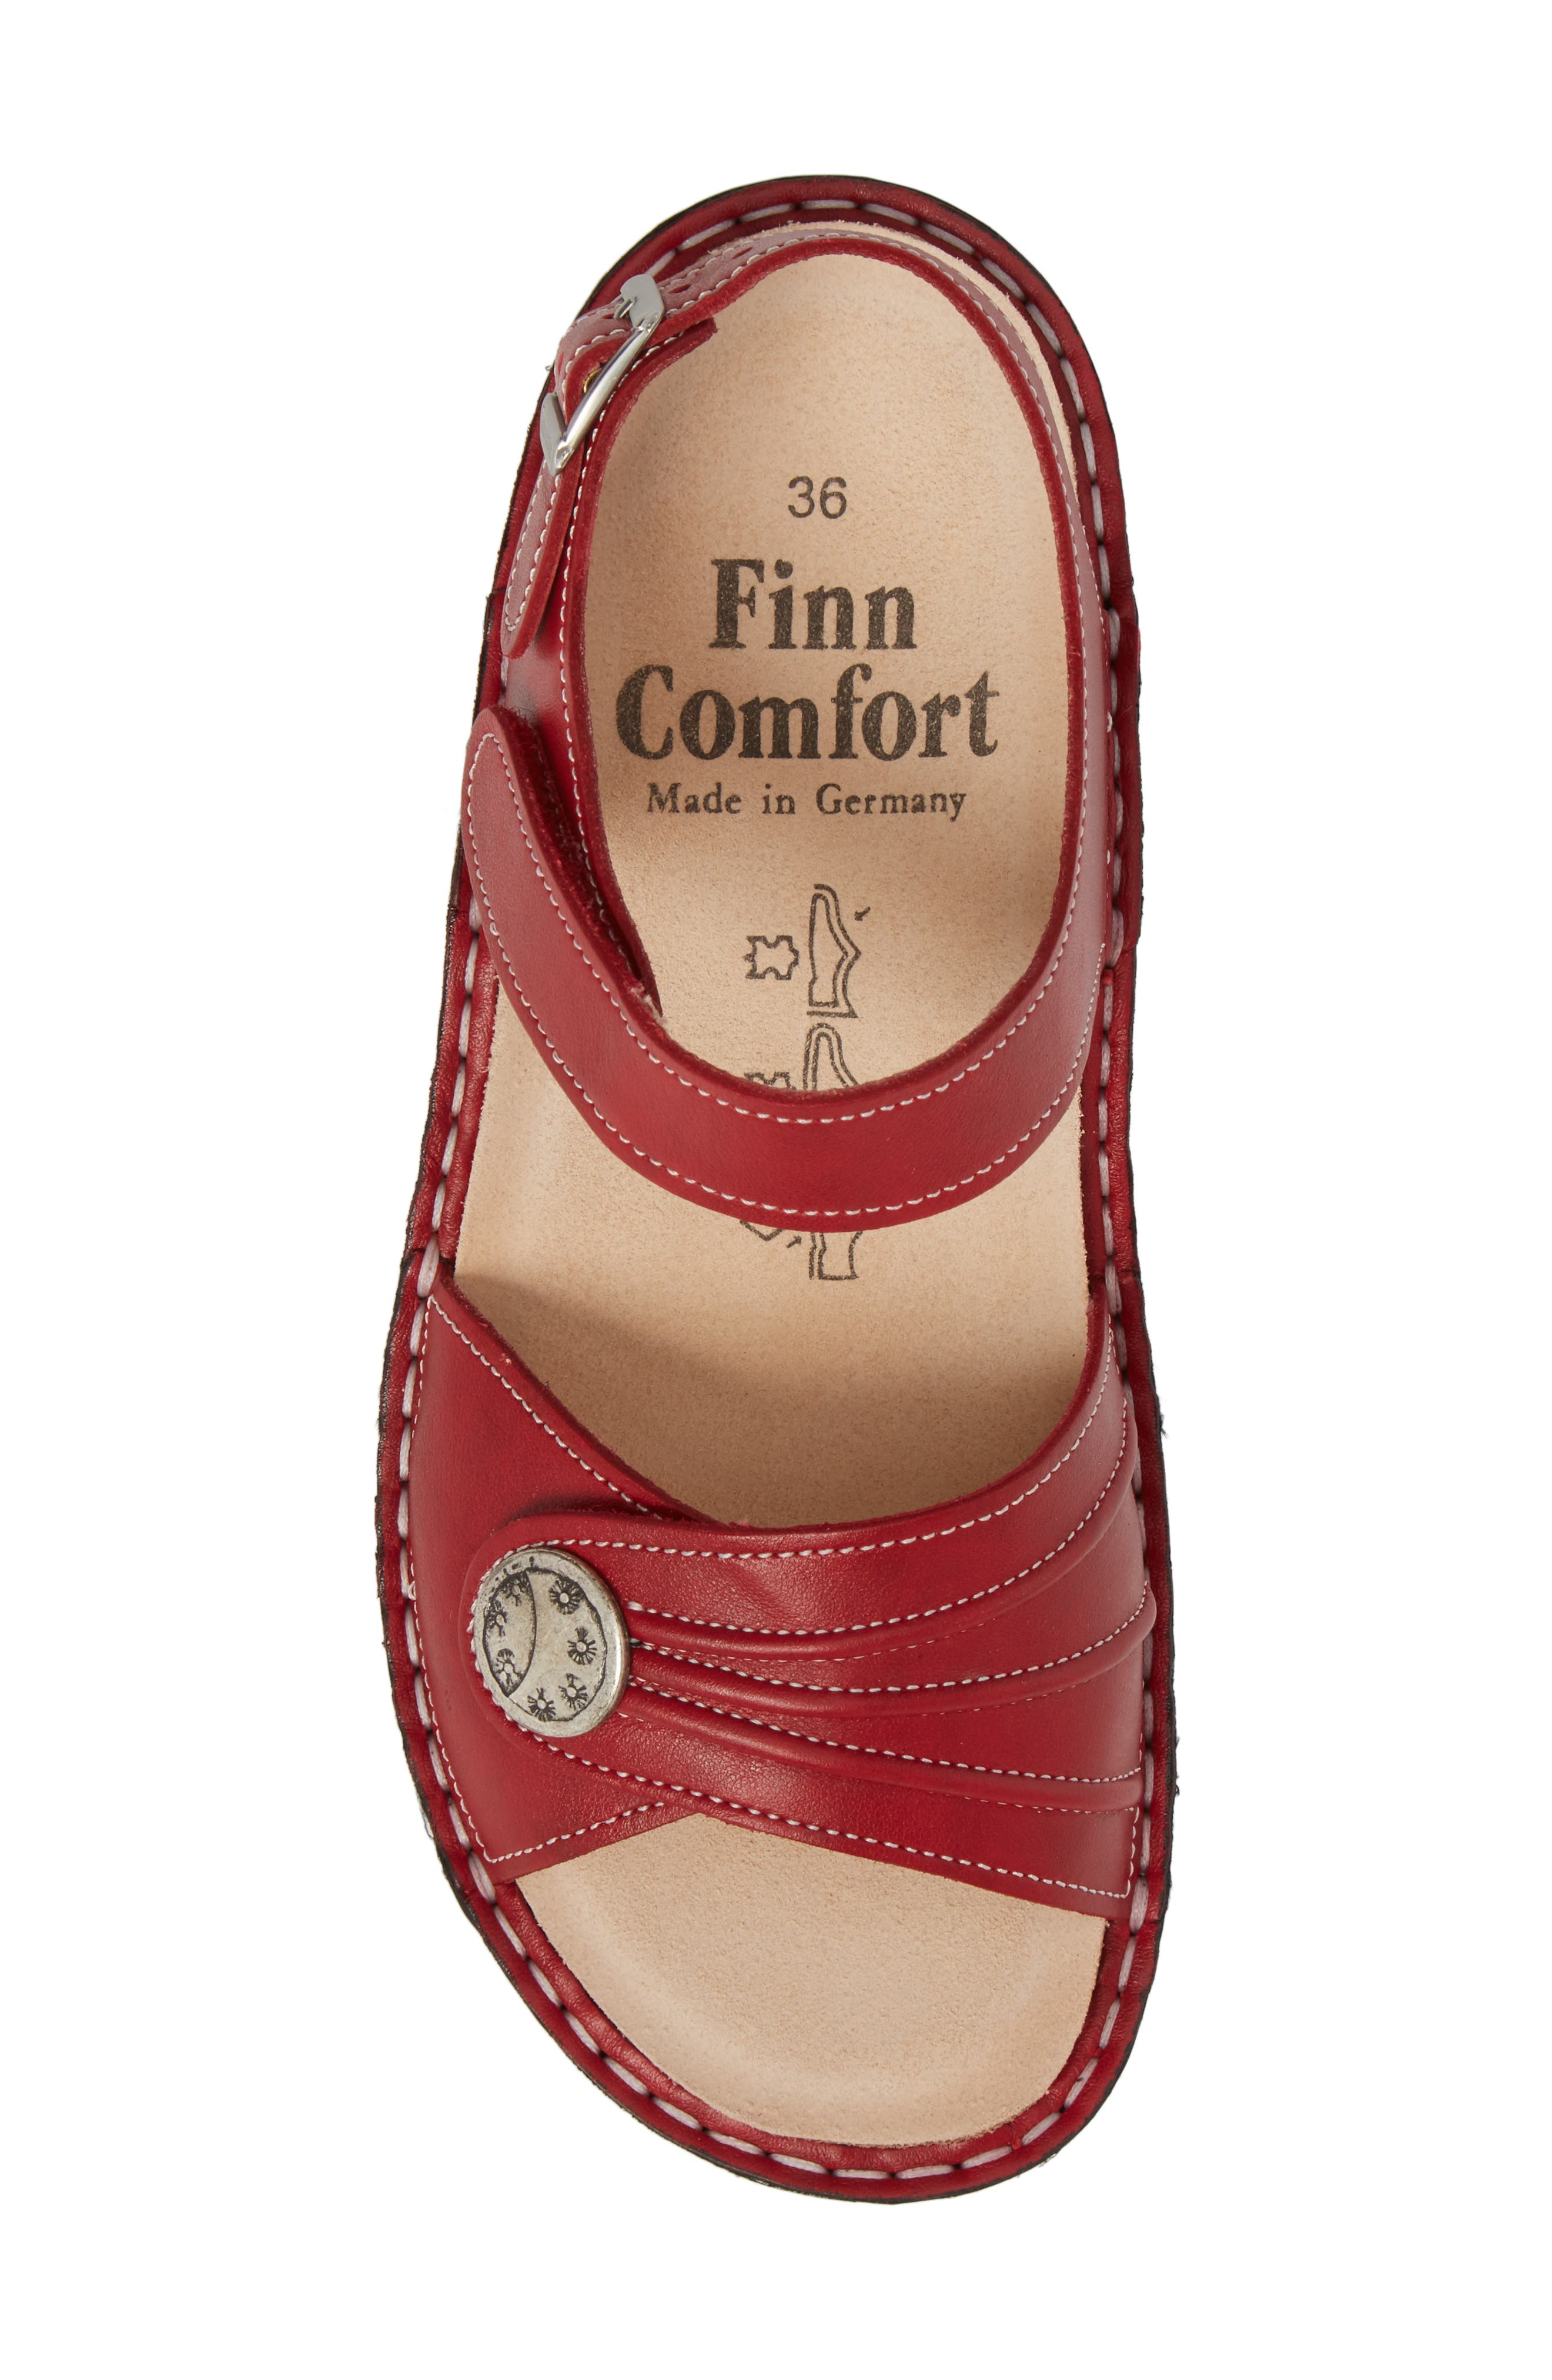 FINNAMIC by Finn Comfort 'Sausalito' Sandal,                             Alternate thumbnail 5, color,                             RED LEATHER